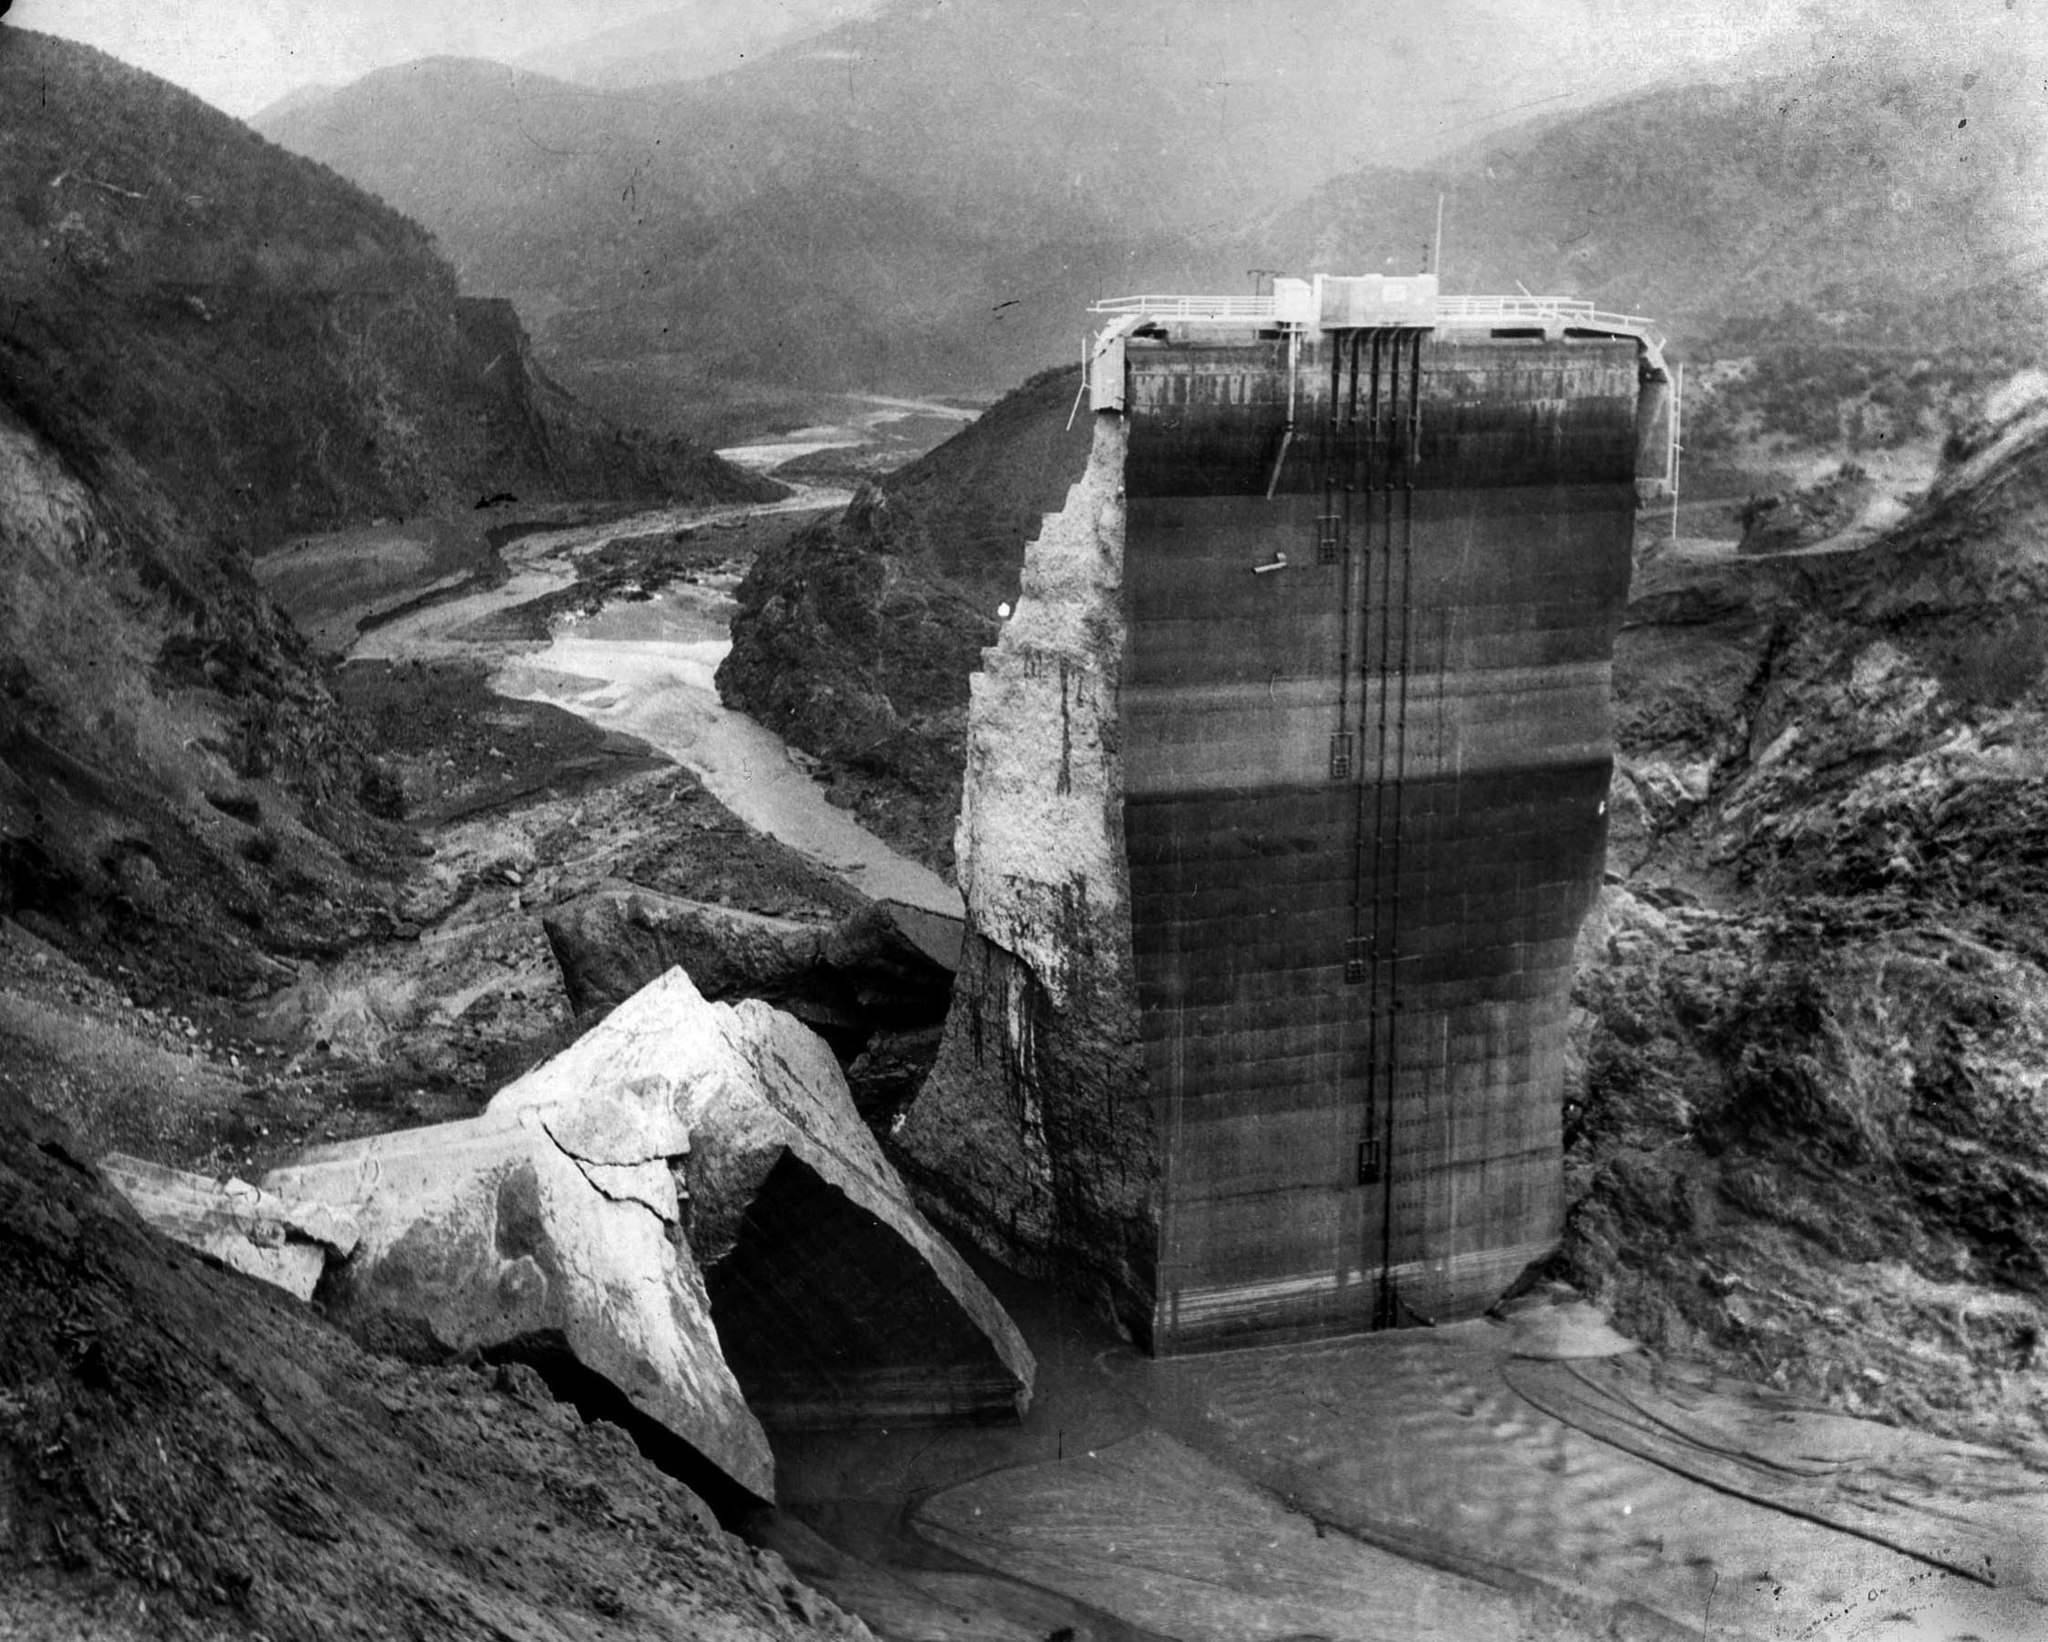 March 1928: Remaining section of St. Francis Dam with crumbled sections at base.